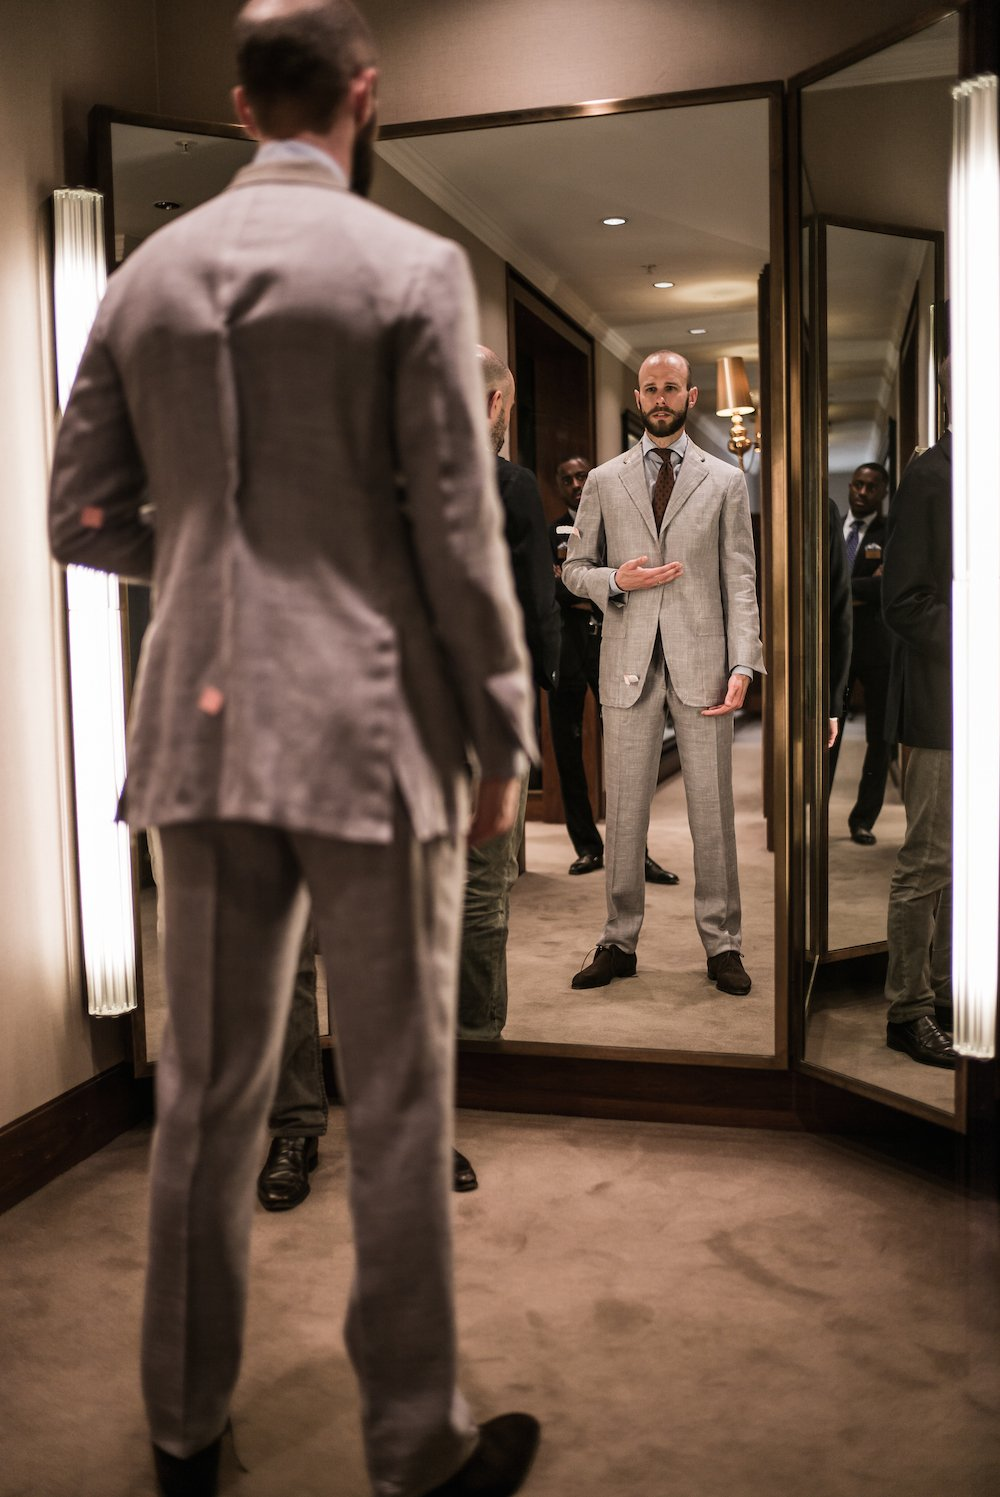 Made To Measure From 4 16: Bespoke Or Made-to-measure?